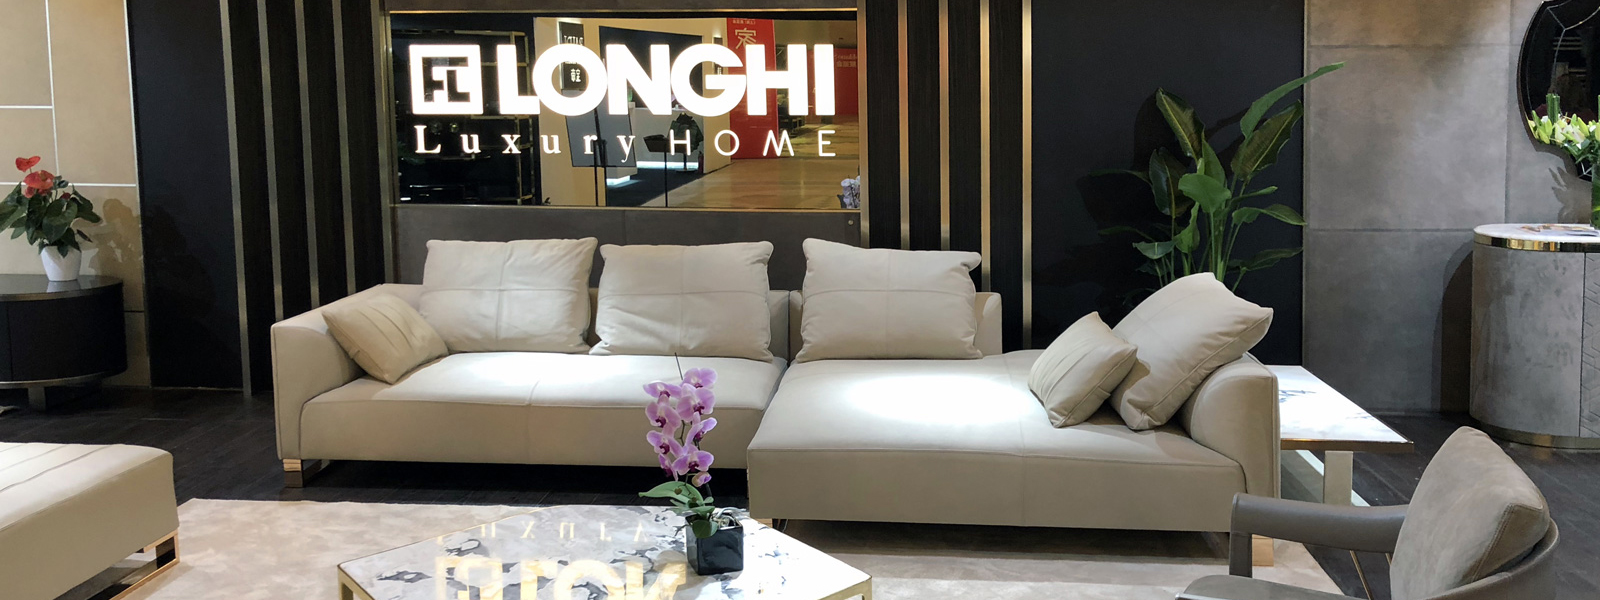 Longhi was presented ILLUSION collection 2018 at the Salone del Mobile.Milano Shanghai  on November 22nd – 24th, 2018.